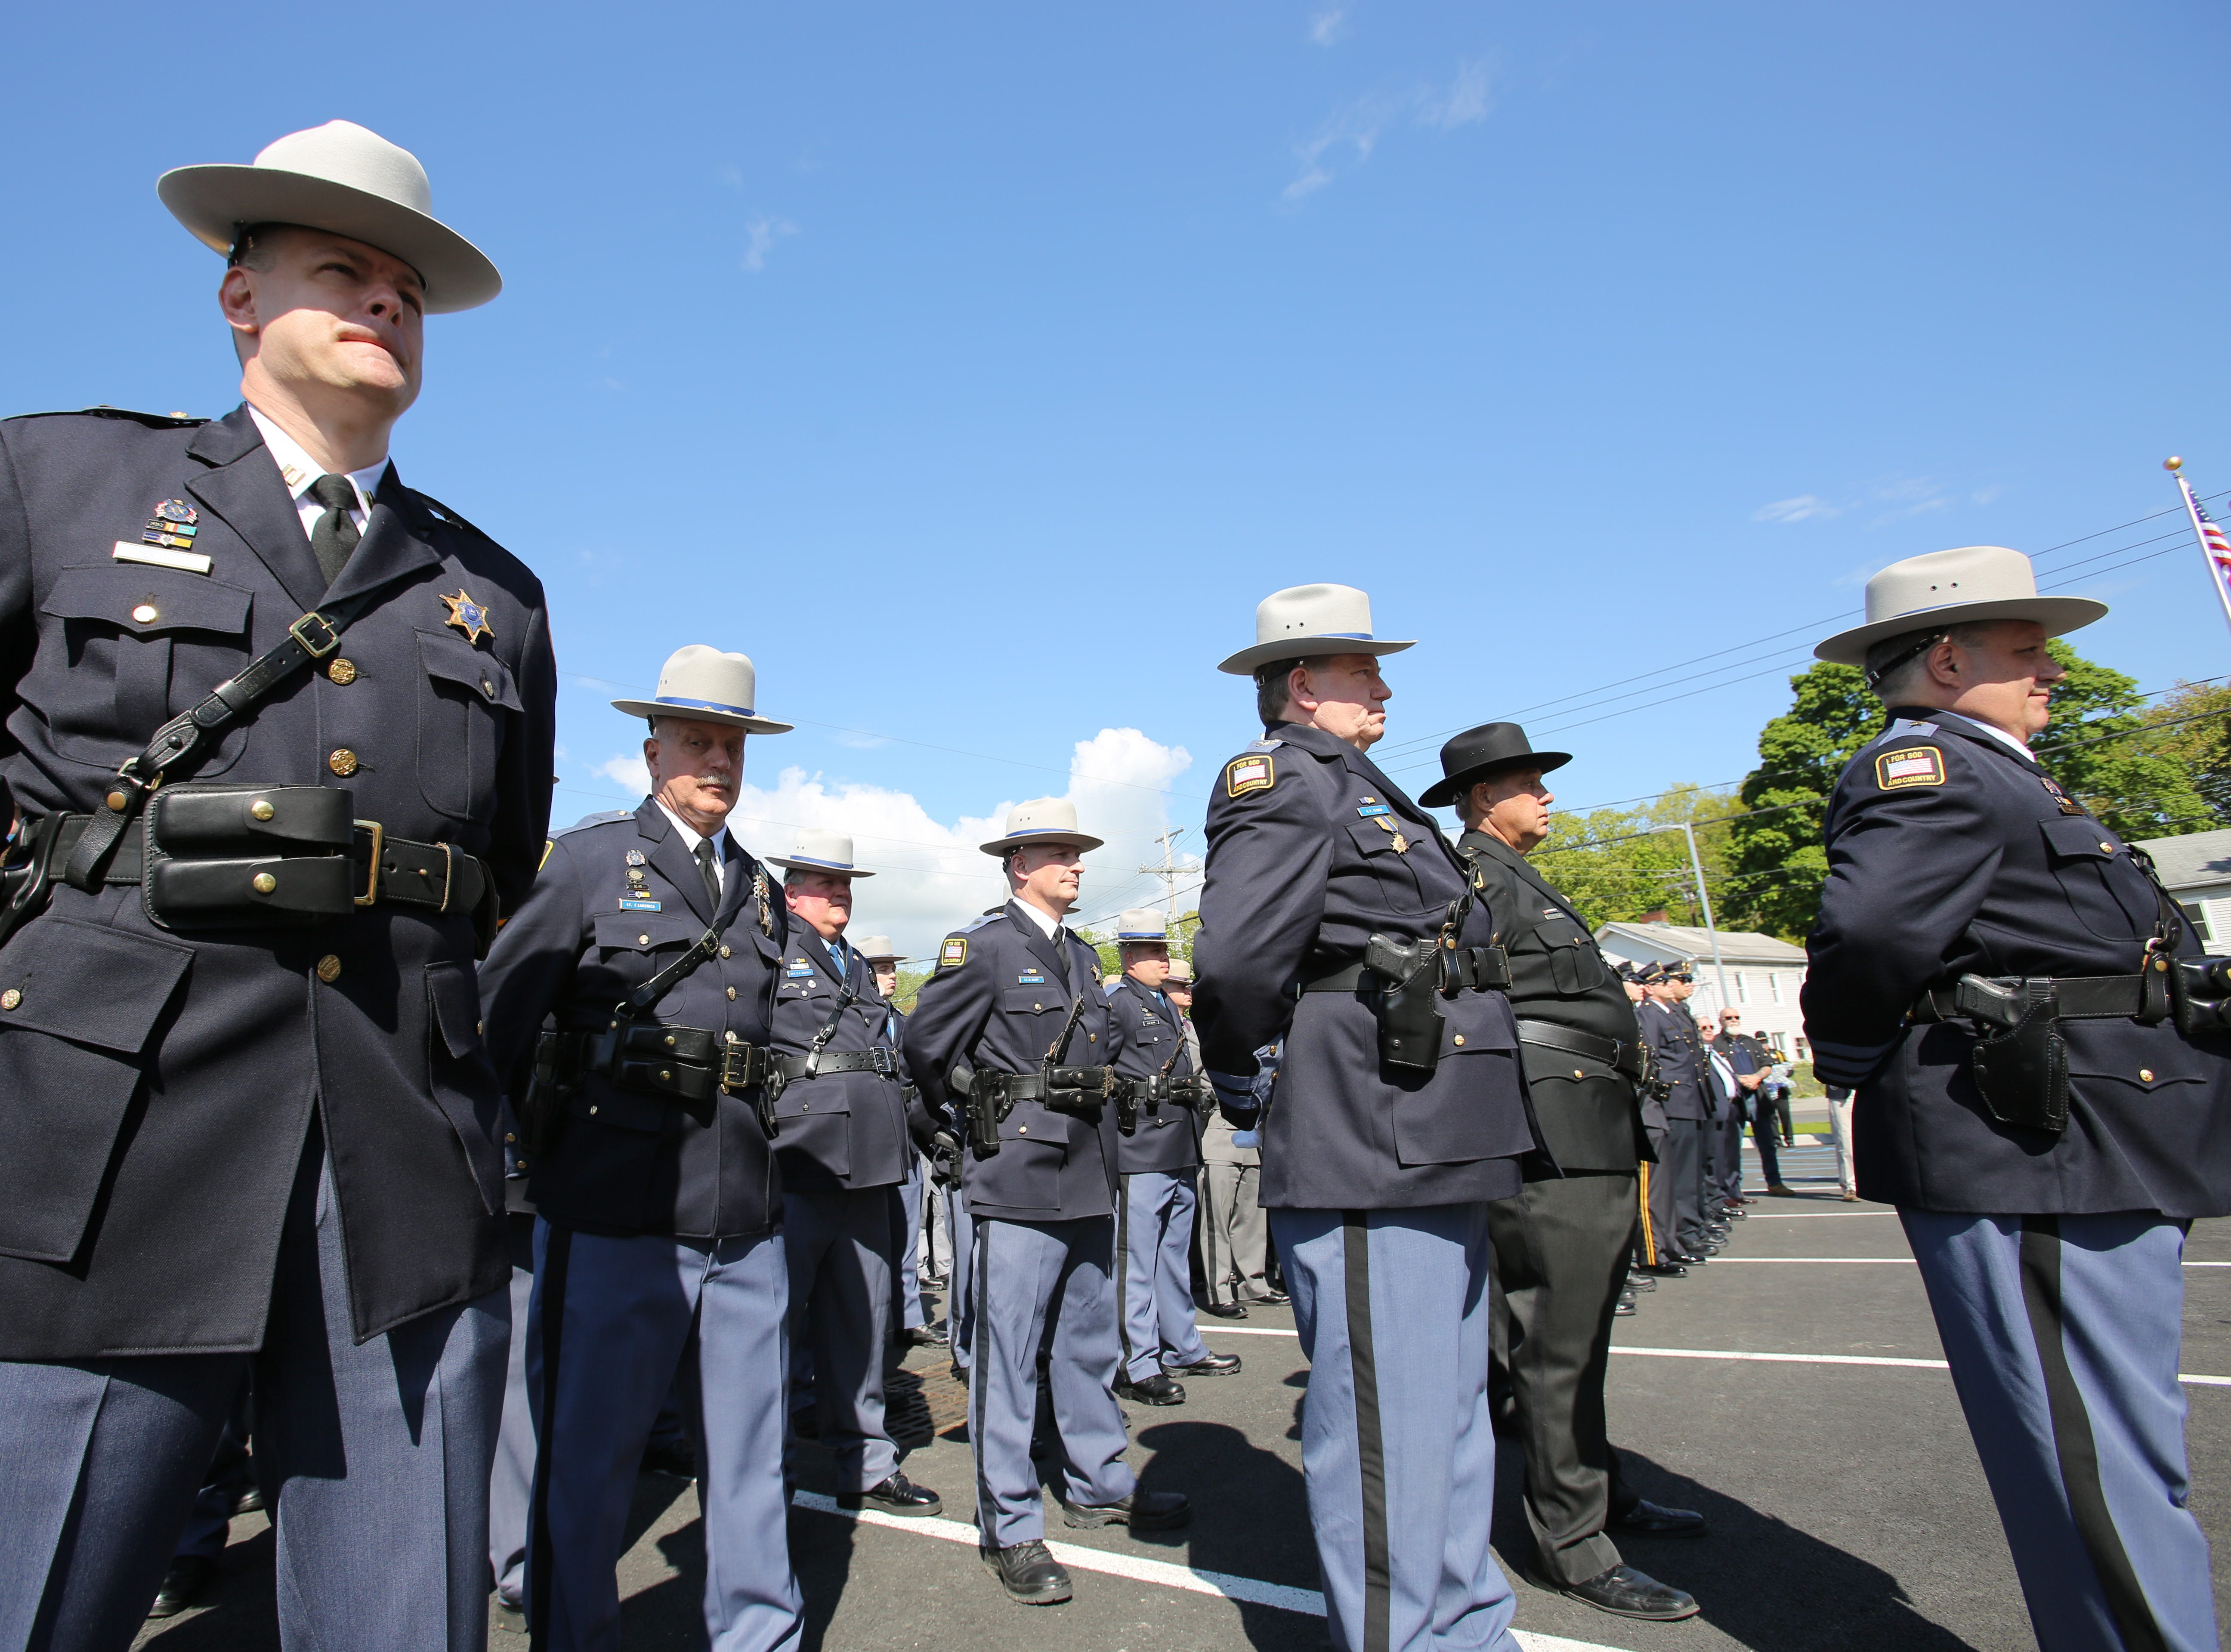 Dutchess County Sheriff's Office deputies stand in the parking lot of the sheriff's office on May 16, 2019 in observance of Memorial Day.